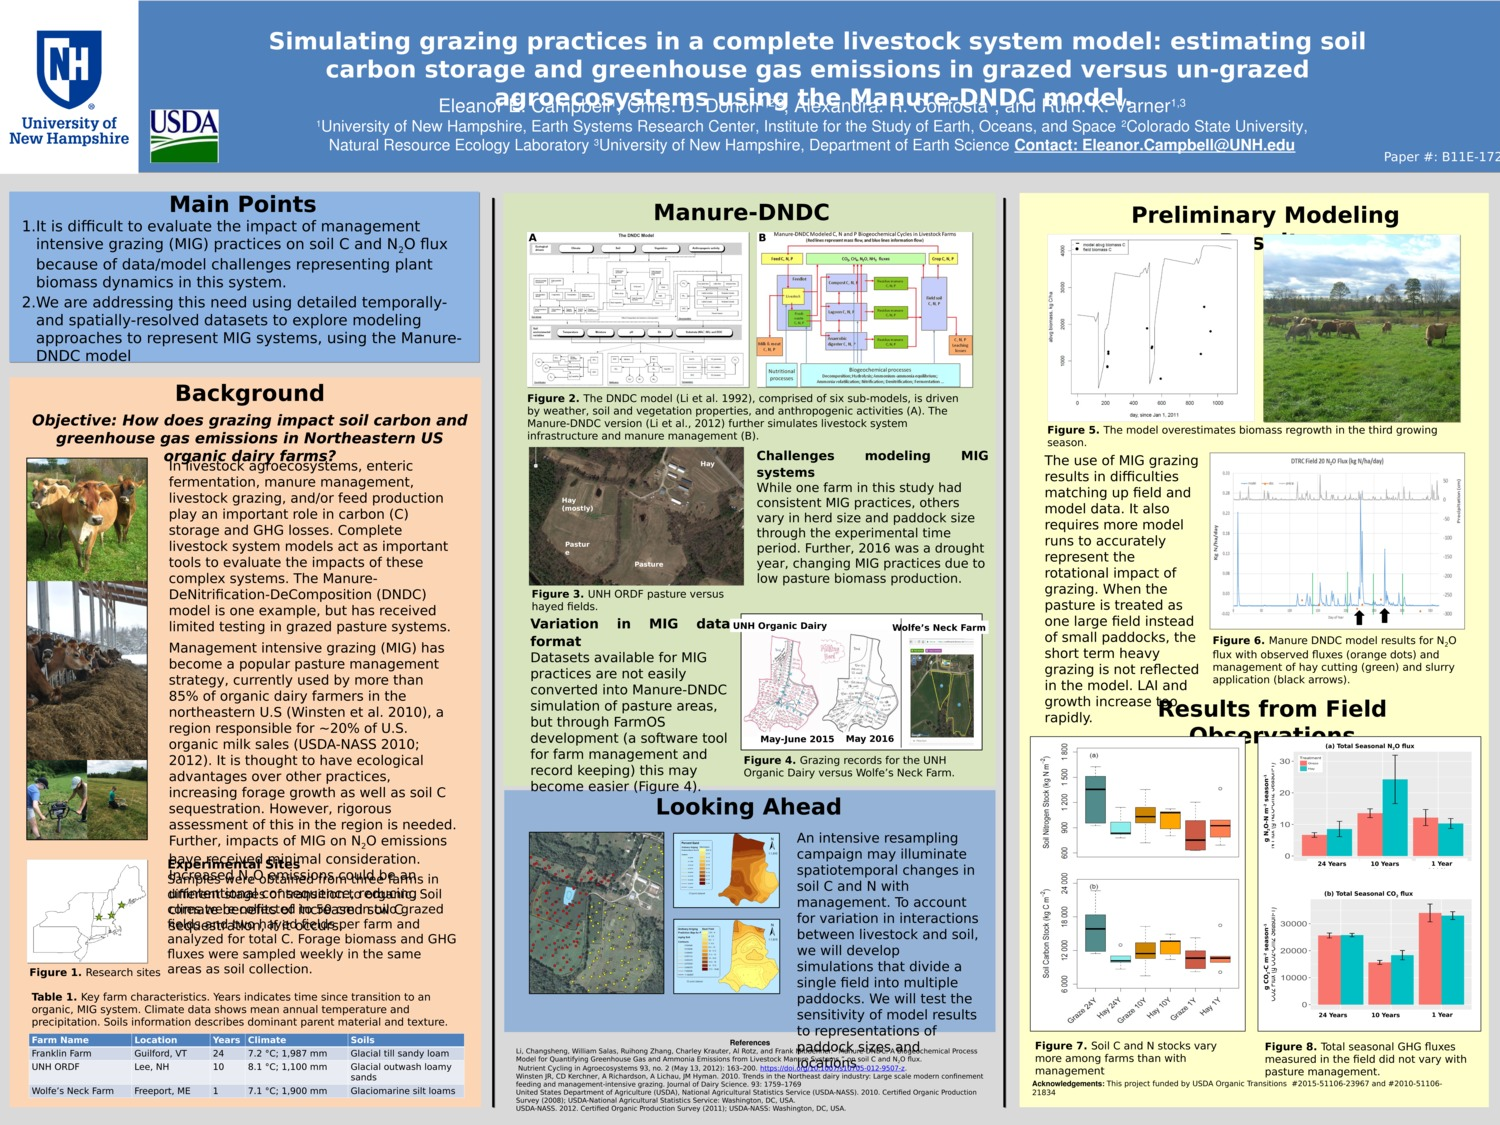 Simulating Grazing Practices In A Complete Livestock System Model: Estimating Soil Carbon Storage And Greenhouse Gas Emissions In Grazed Versus Un-Grazed Agroecosystems Using The Manure-Dndc Model by eecampbell